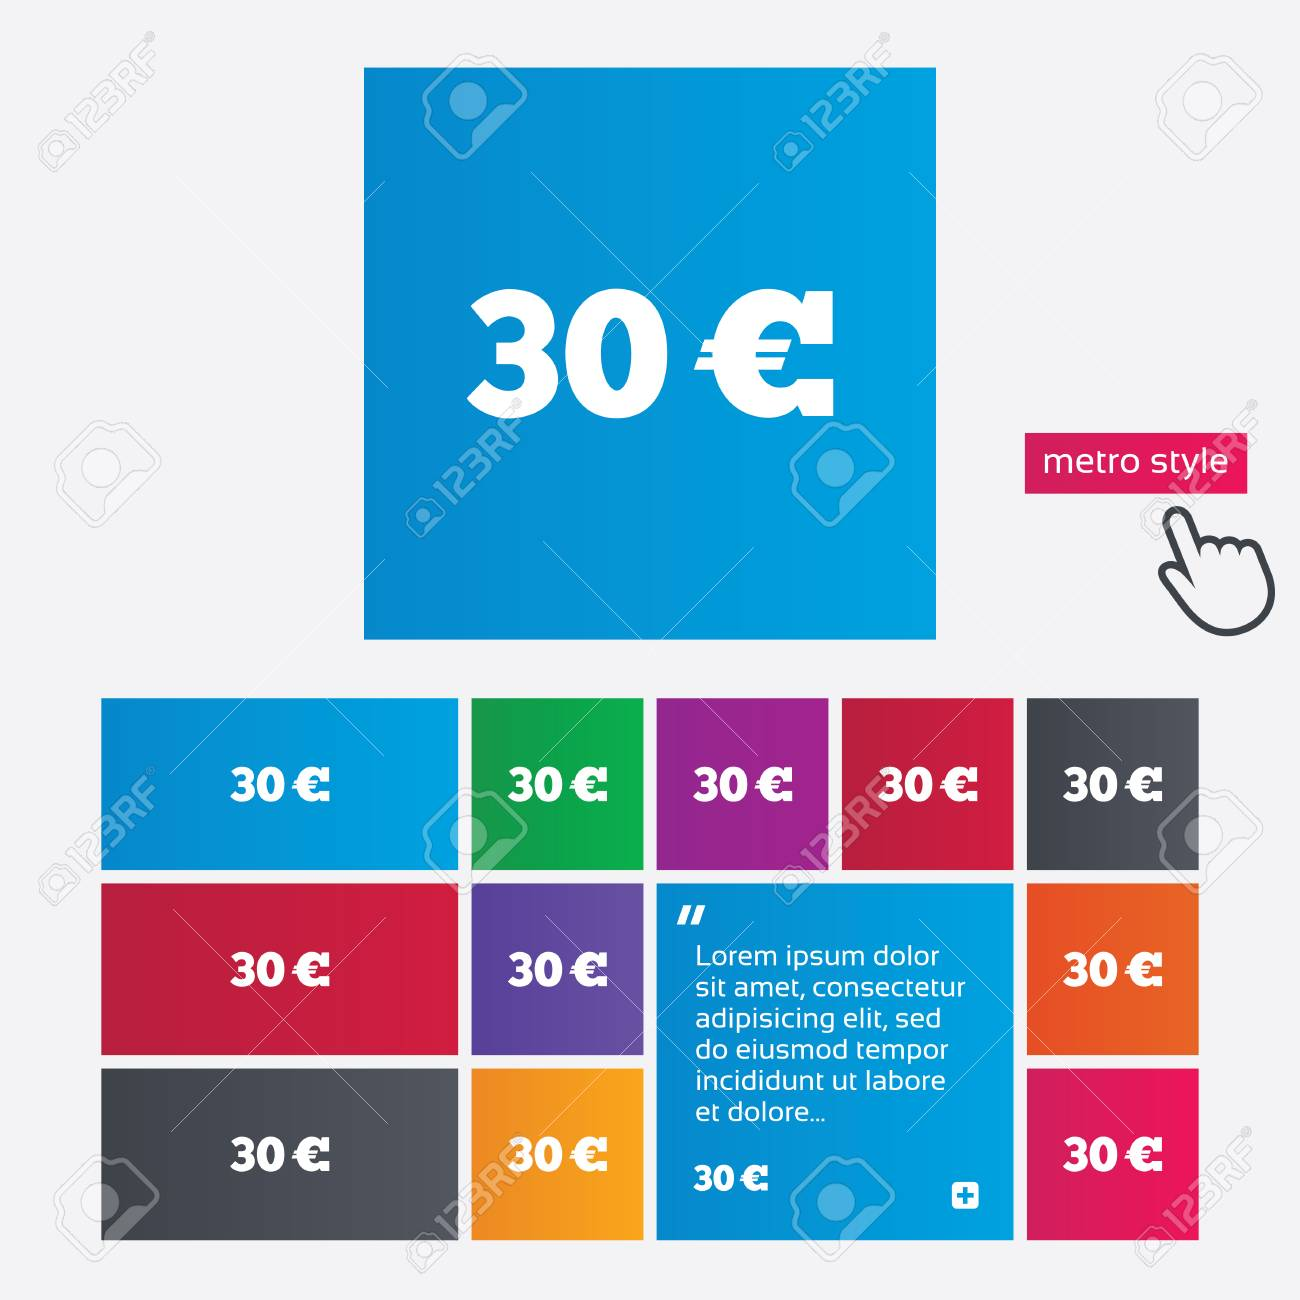 30 euro sign icon eur currency symbol money label metro style 30 euro sign icon eur currency symbol money label metro style buttons buycottarizona Gallery